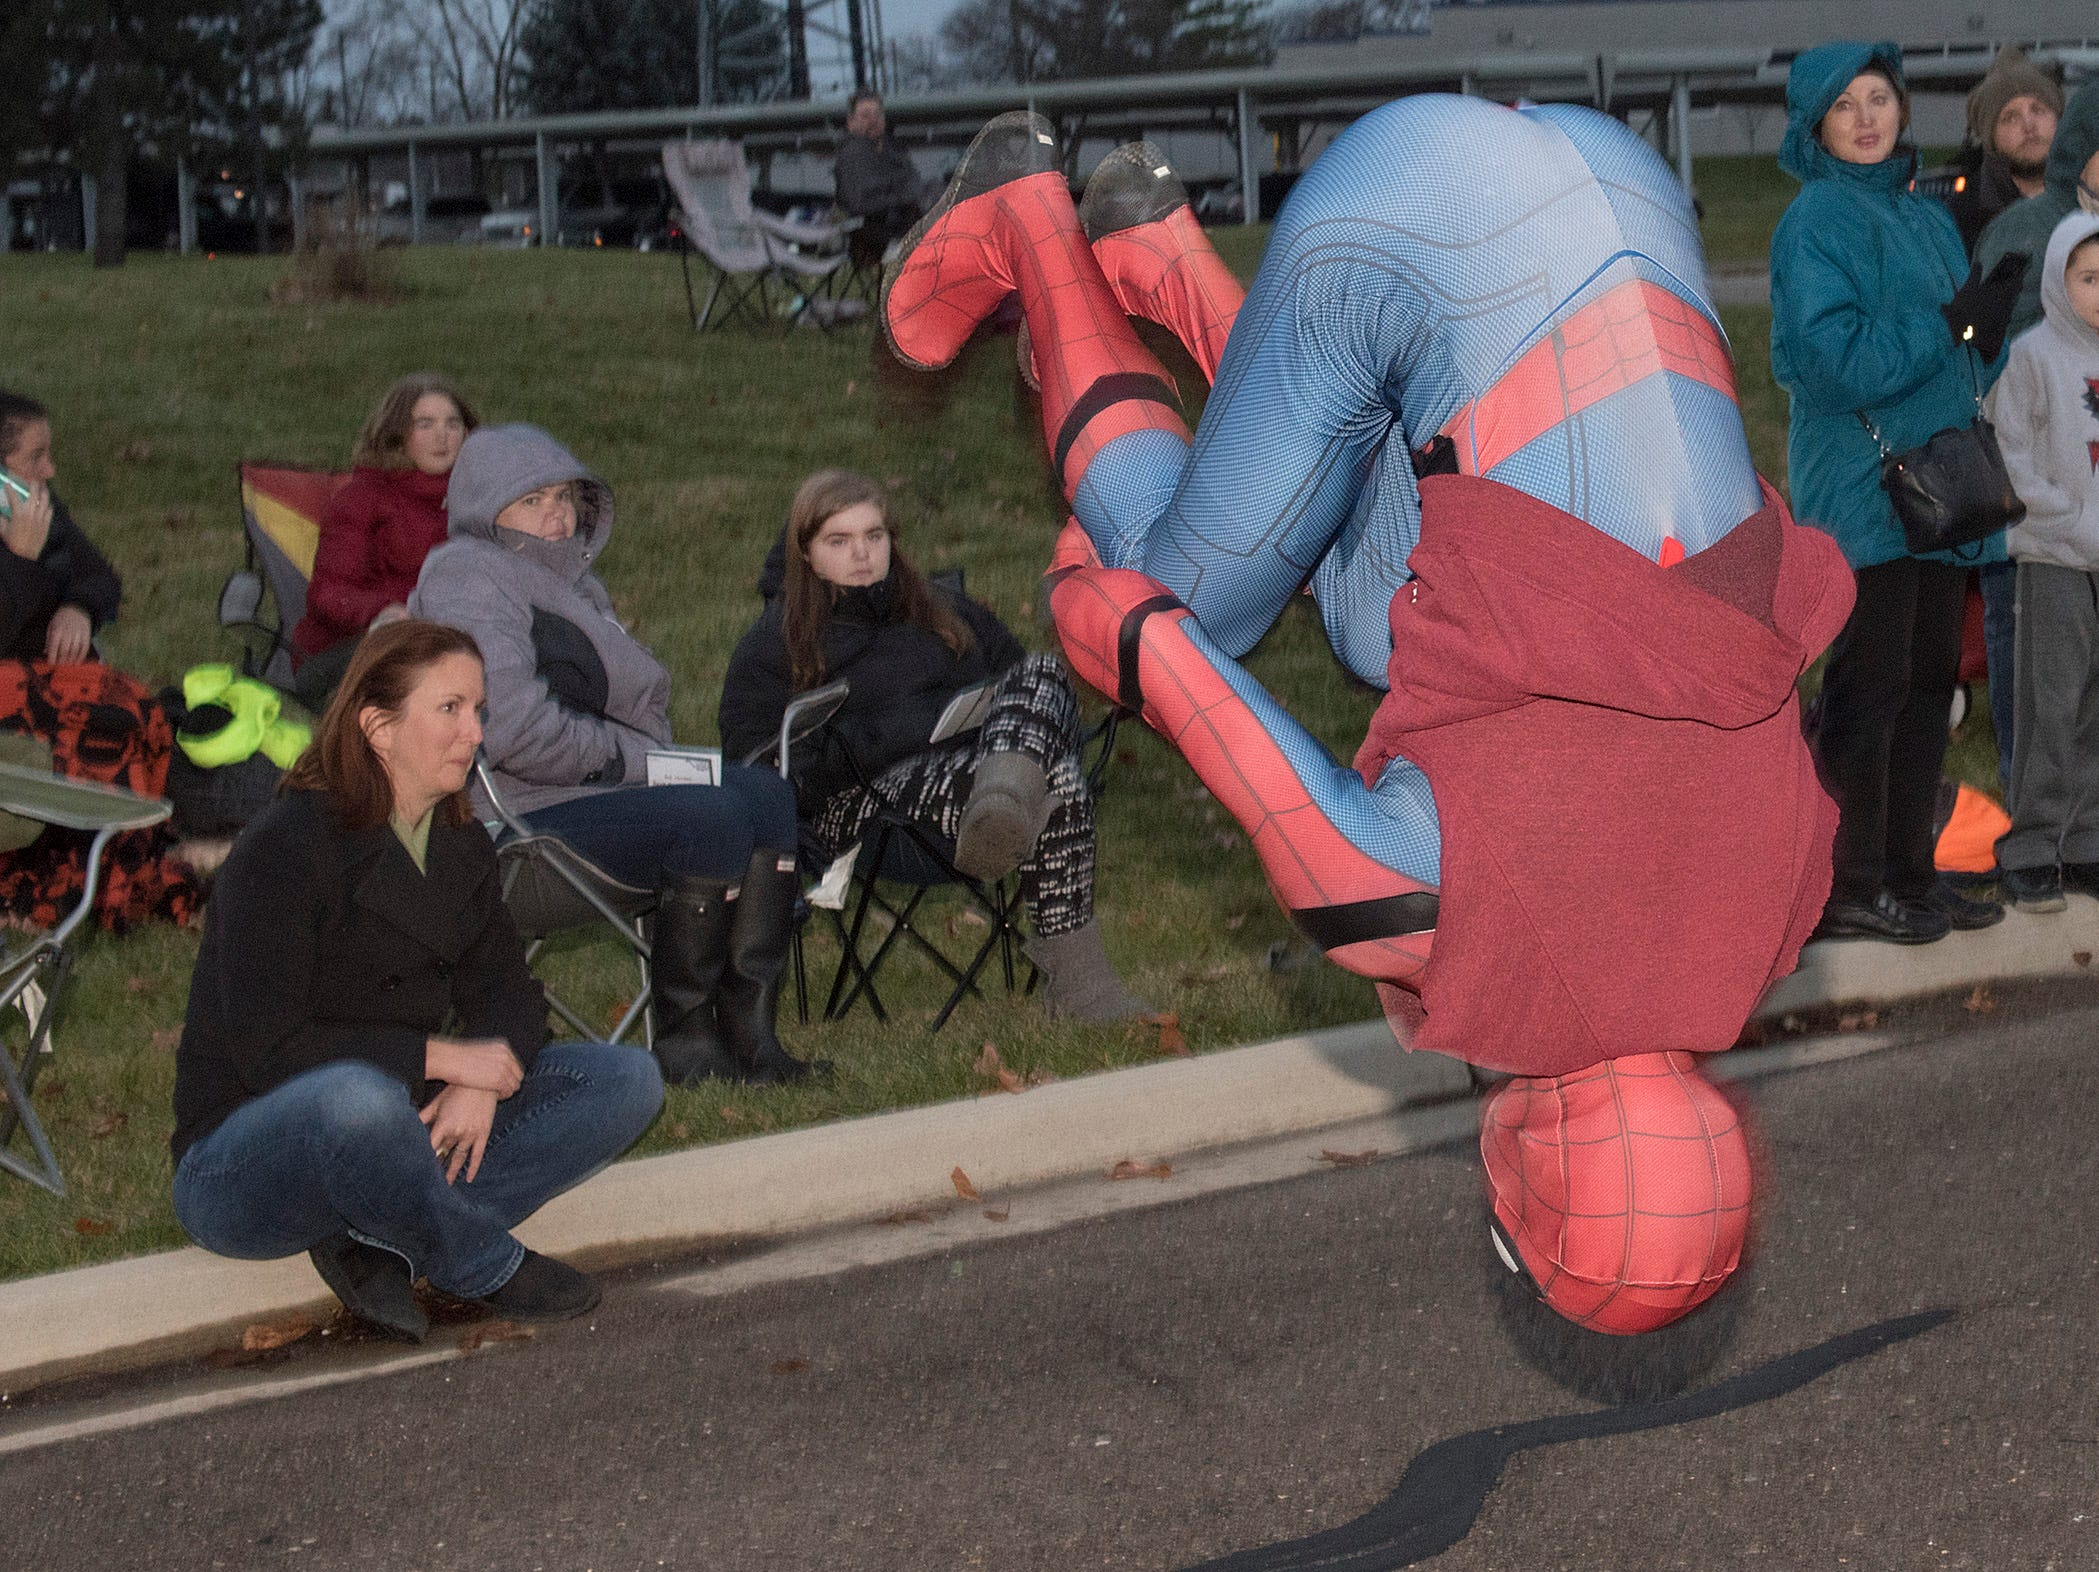 Spidey joined the guys from Phoenix Freerunning Academy and was pretty excited about the parade.